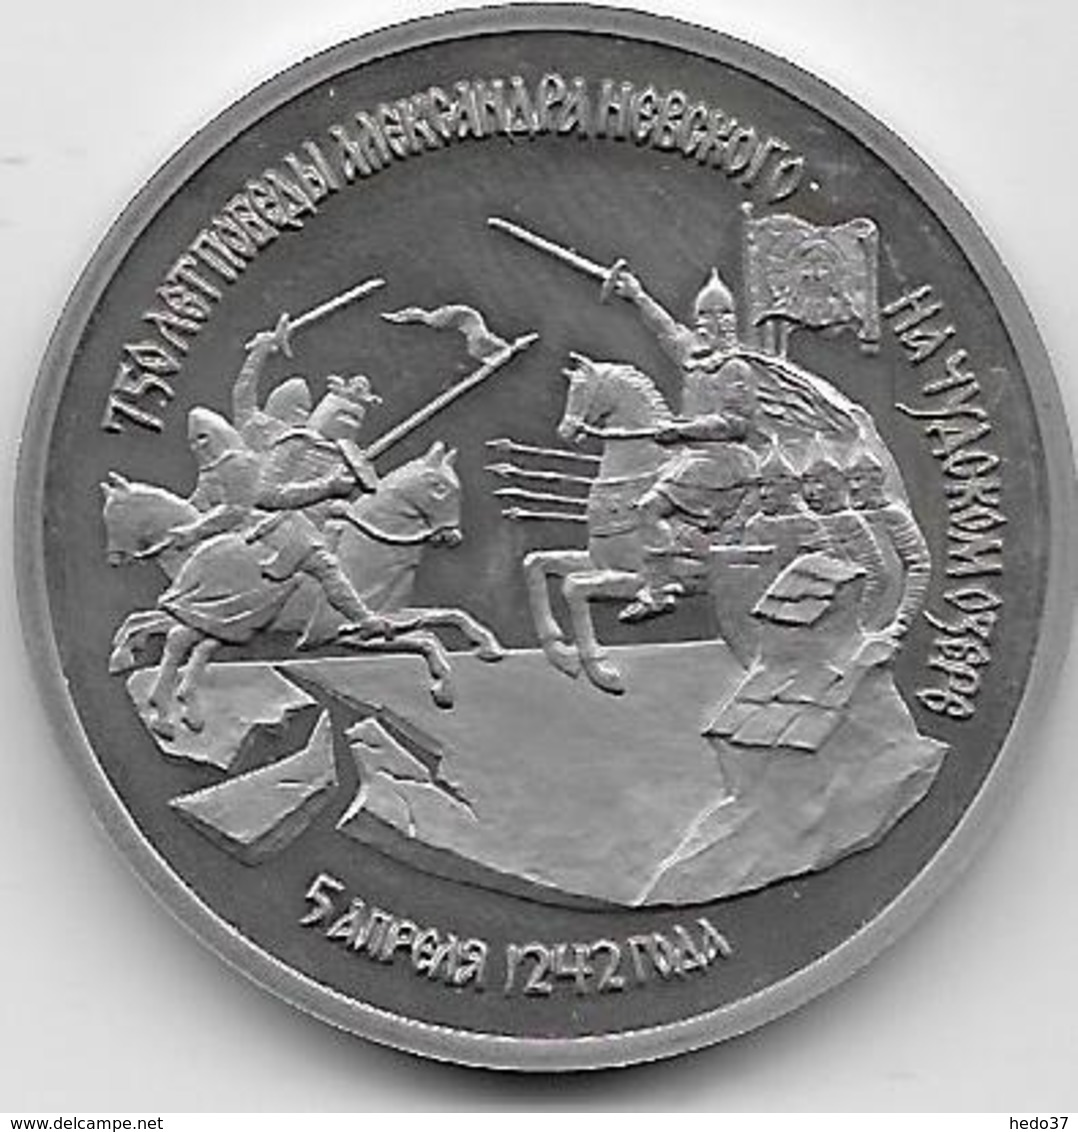 Russie - 3 Roubles - 1992 - SUP - Rusland